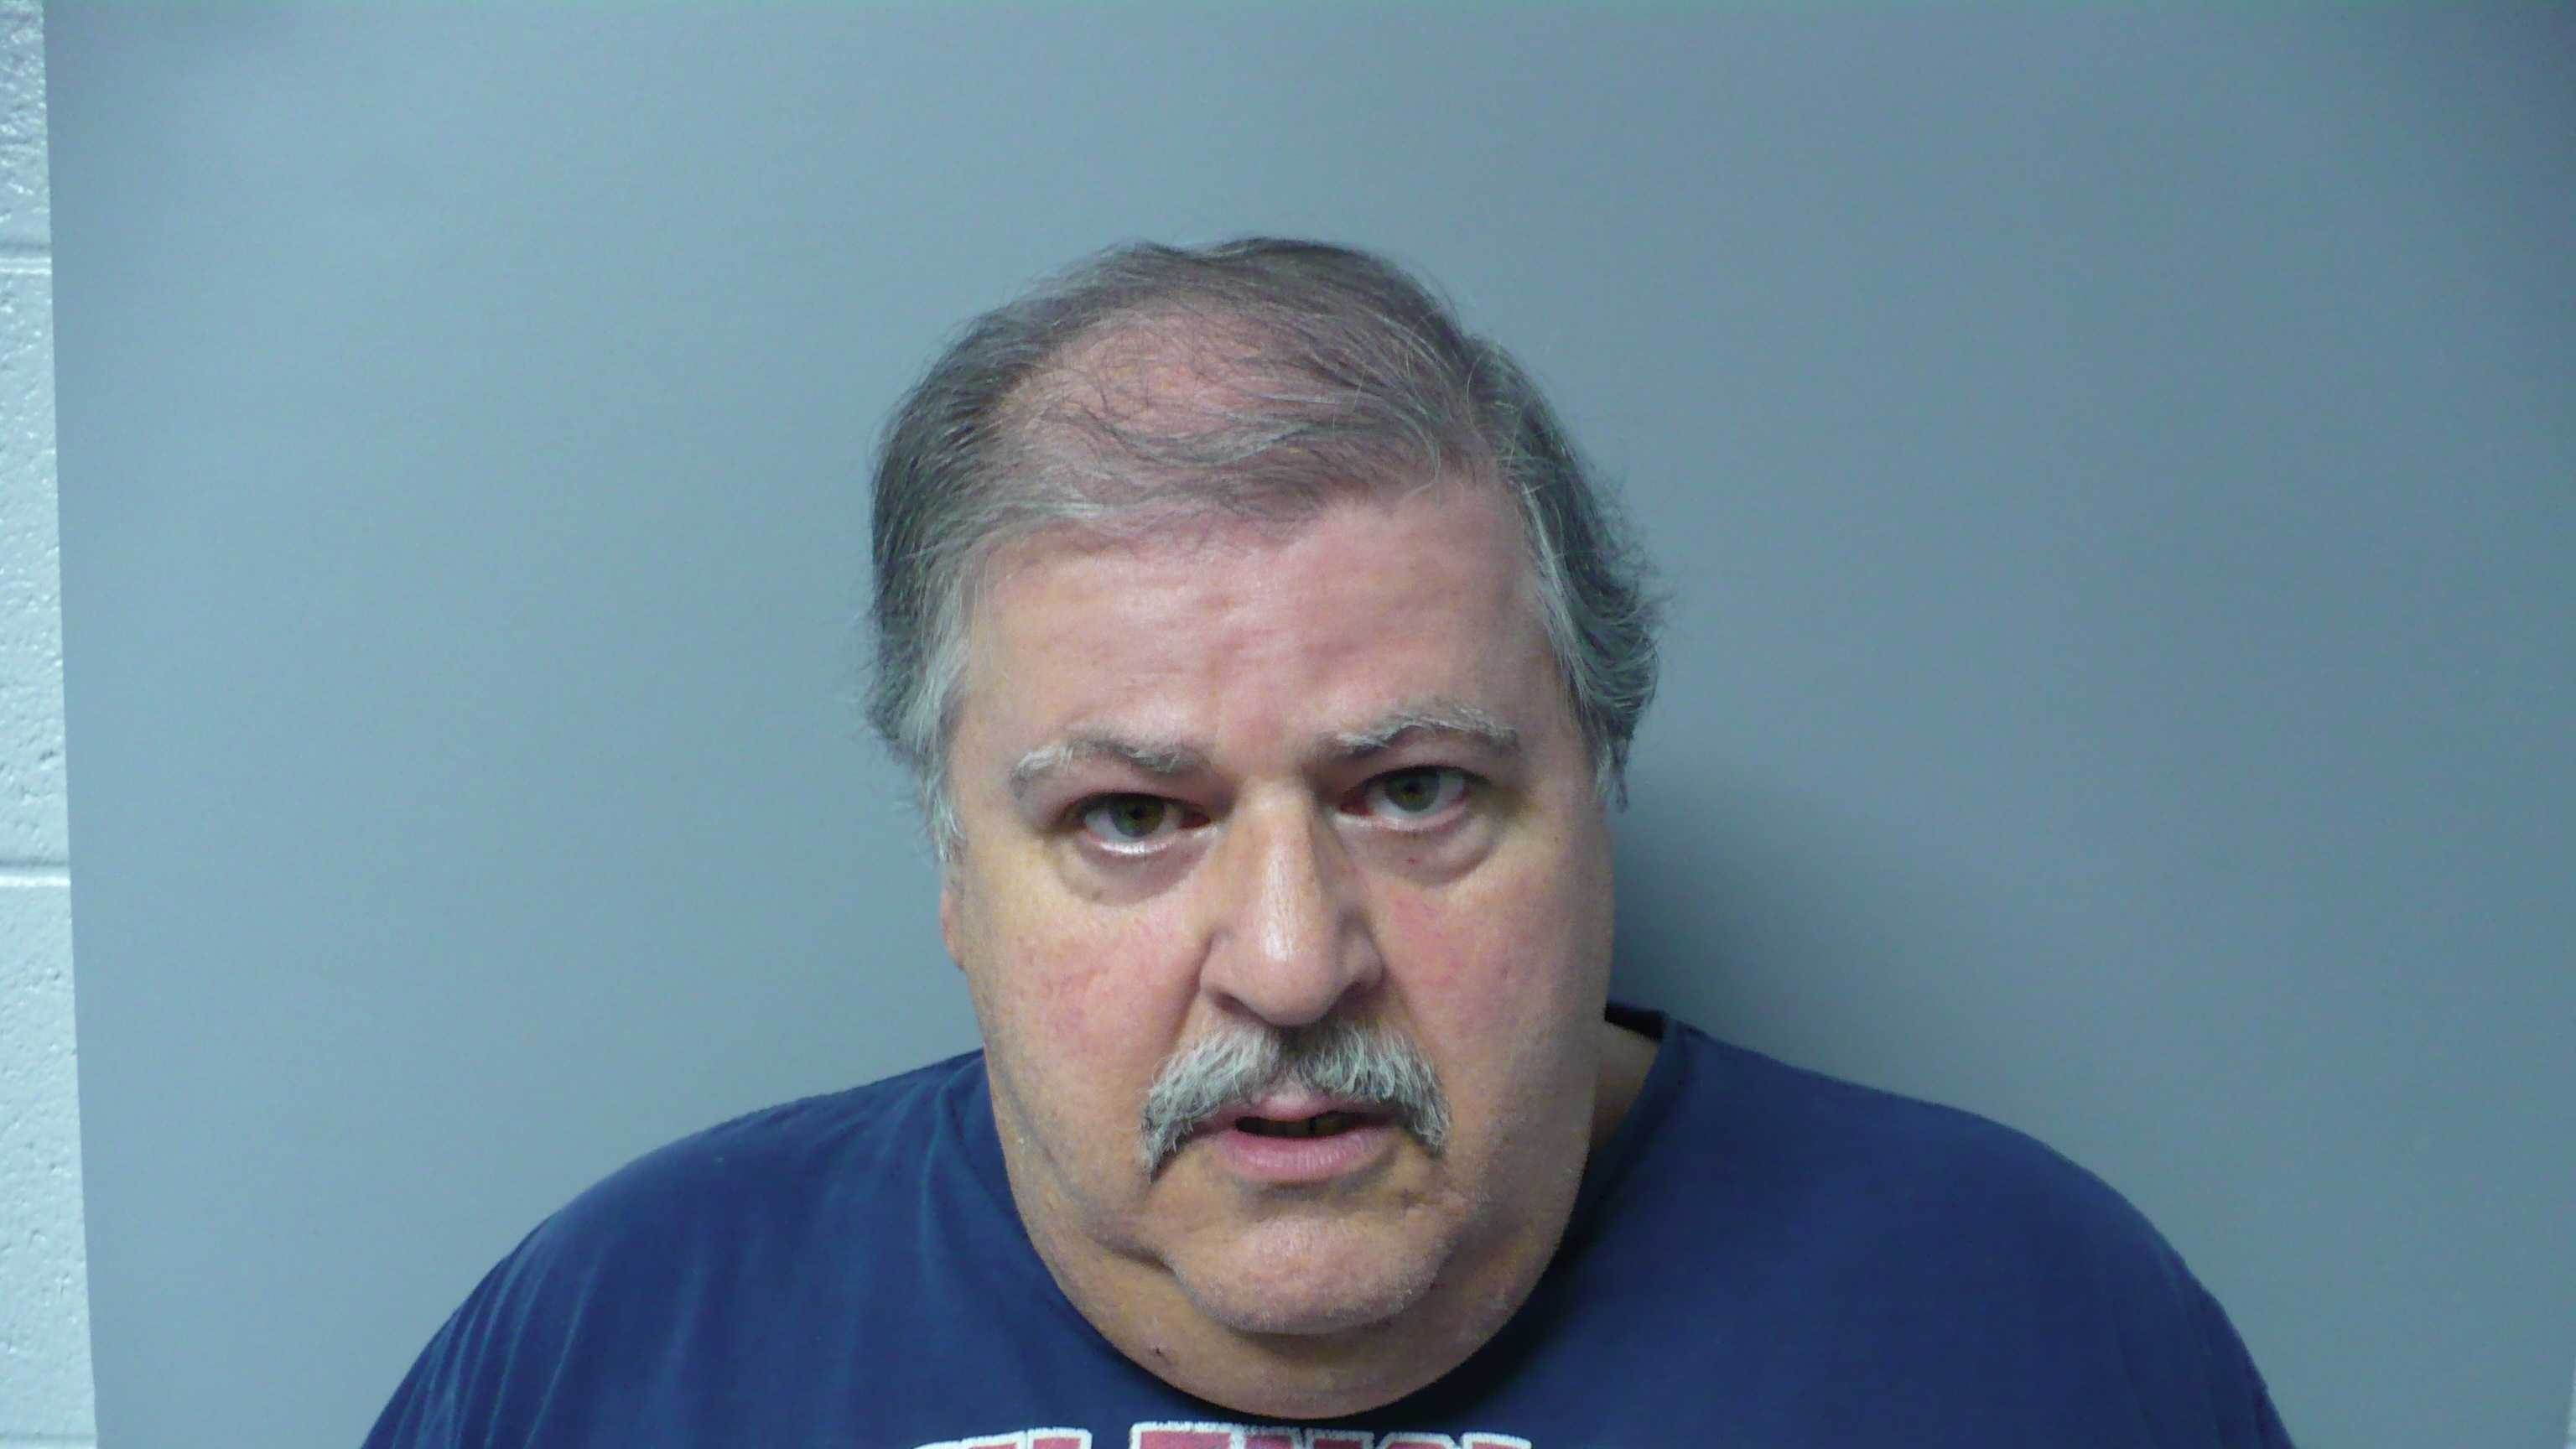 Police: Colchester employee arrested for embezzlement